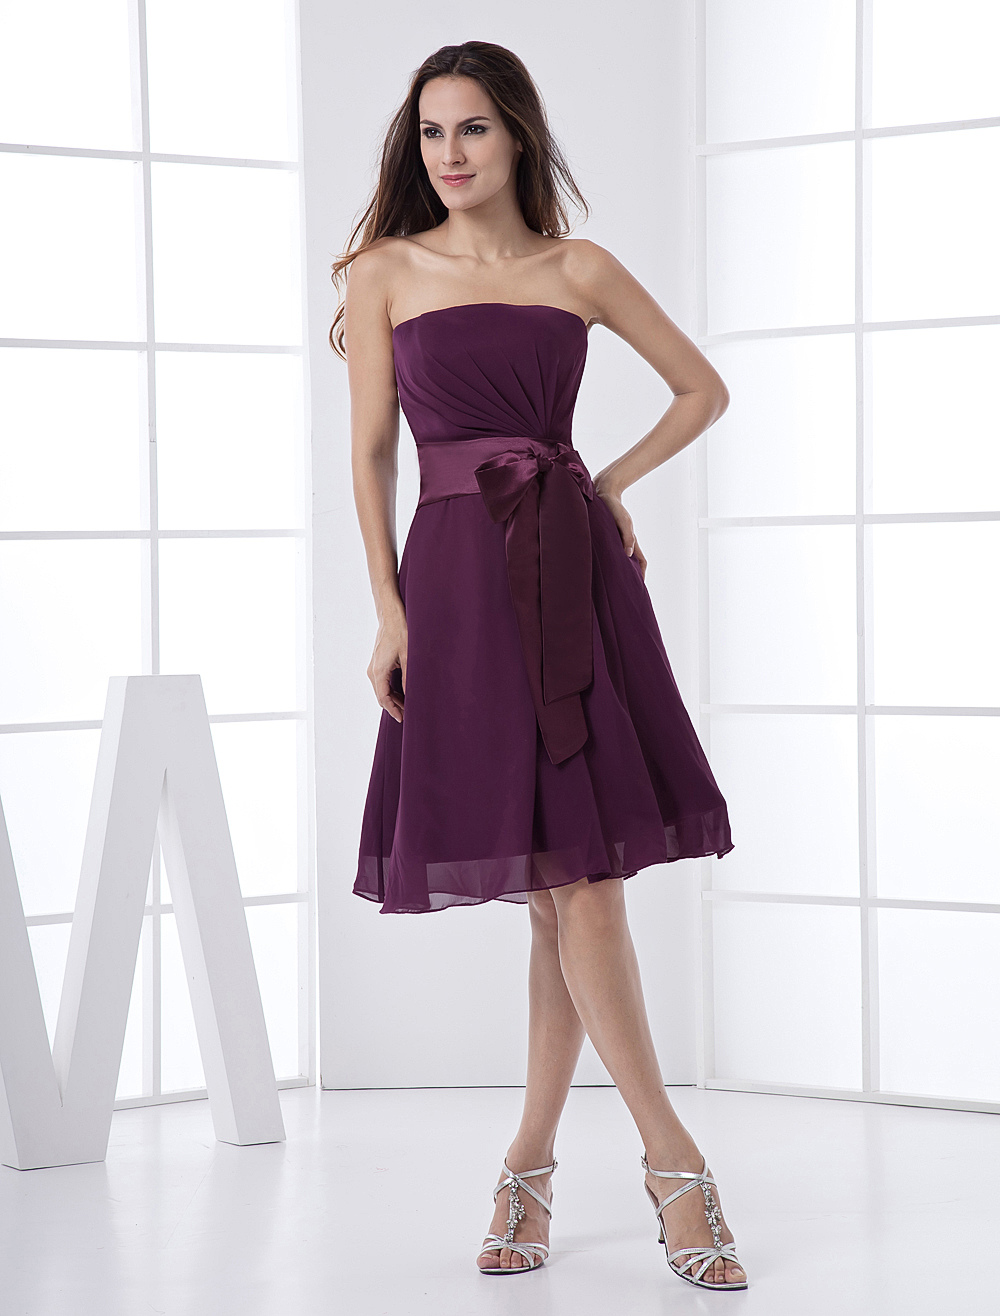 Grape Strapless Sash Satin Chiffon Summer Homecoming Bridesmaid Dress